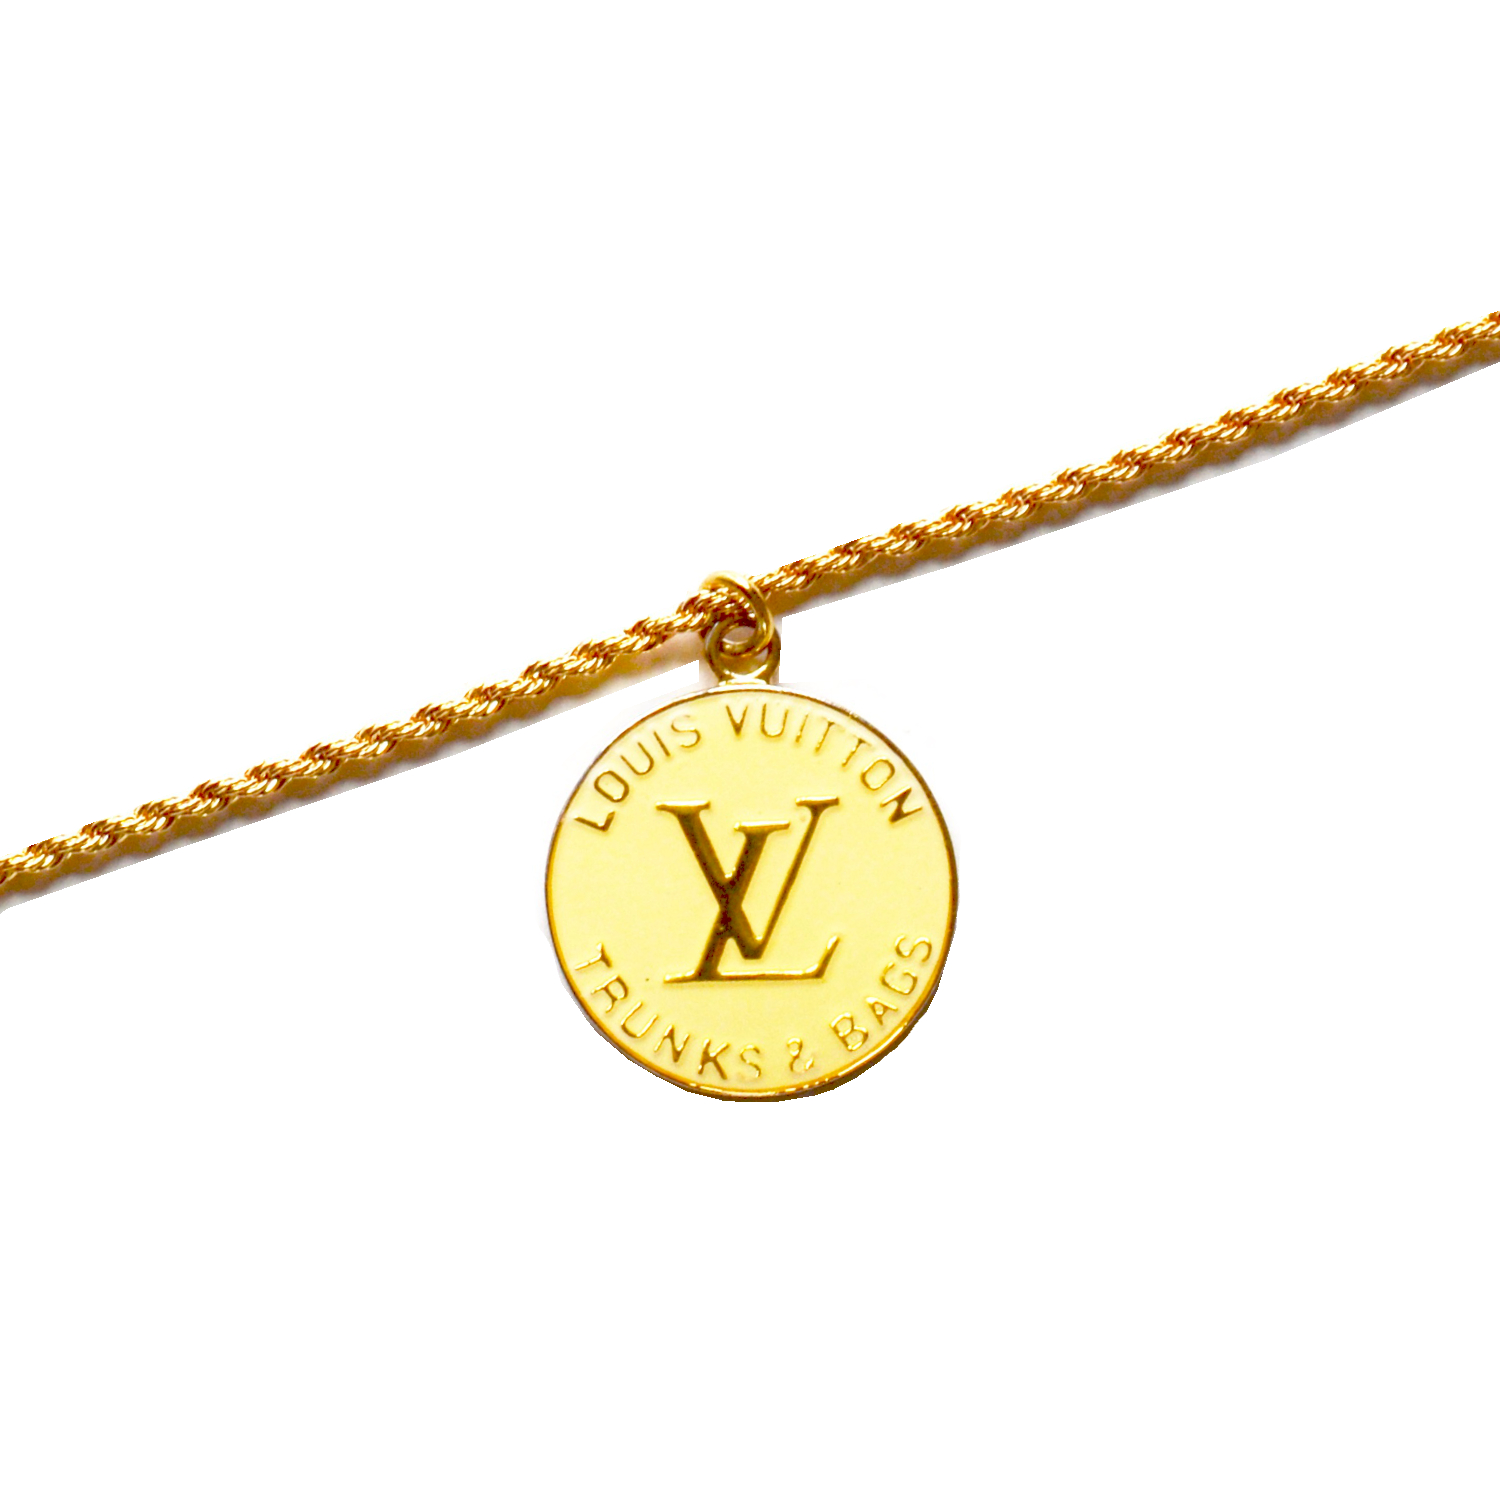 Reworked Louis Vuitton Logo Charm Necklace